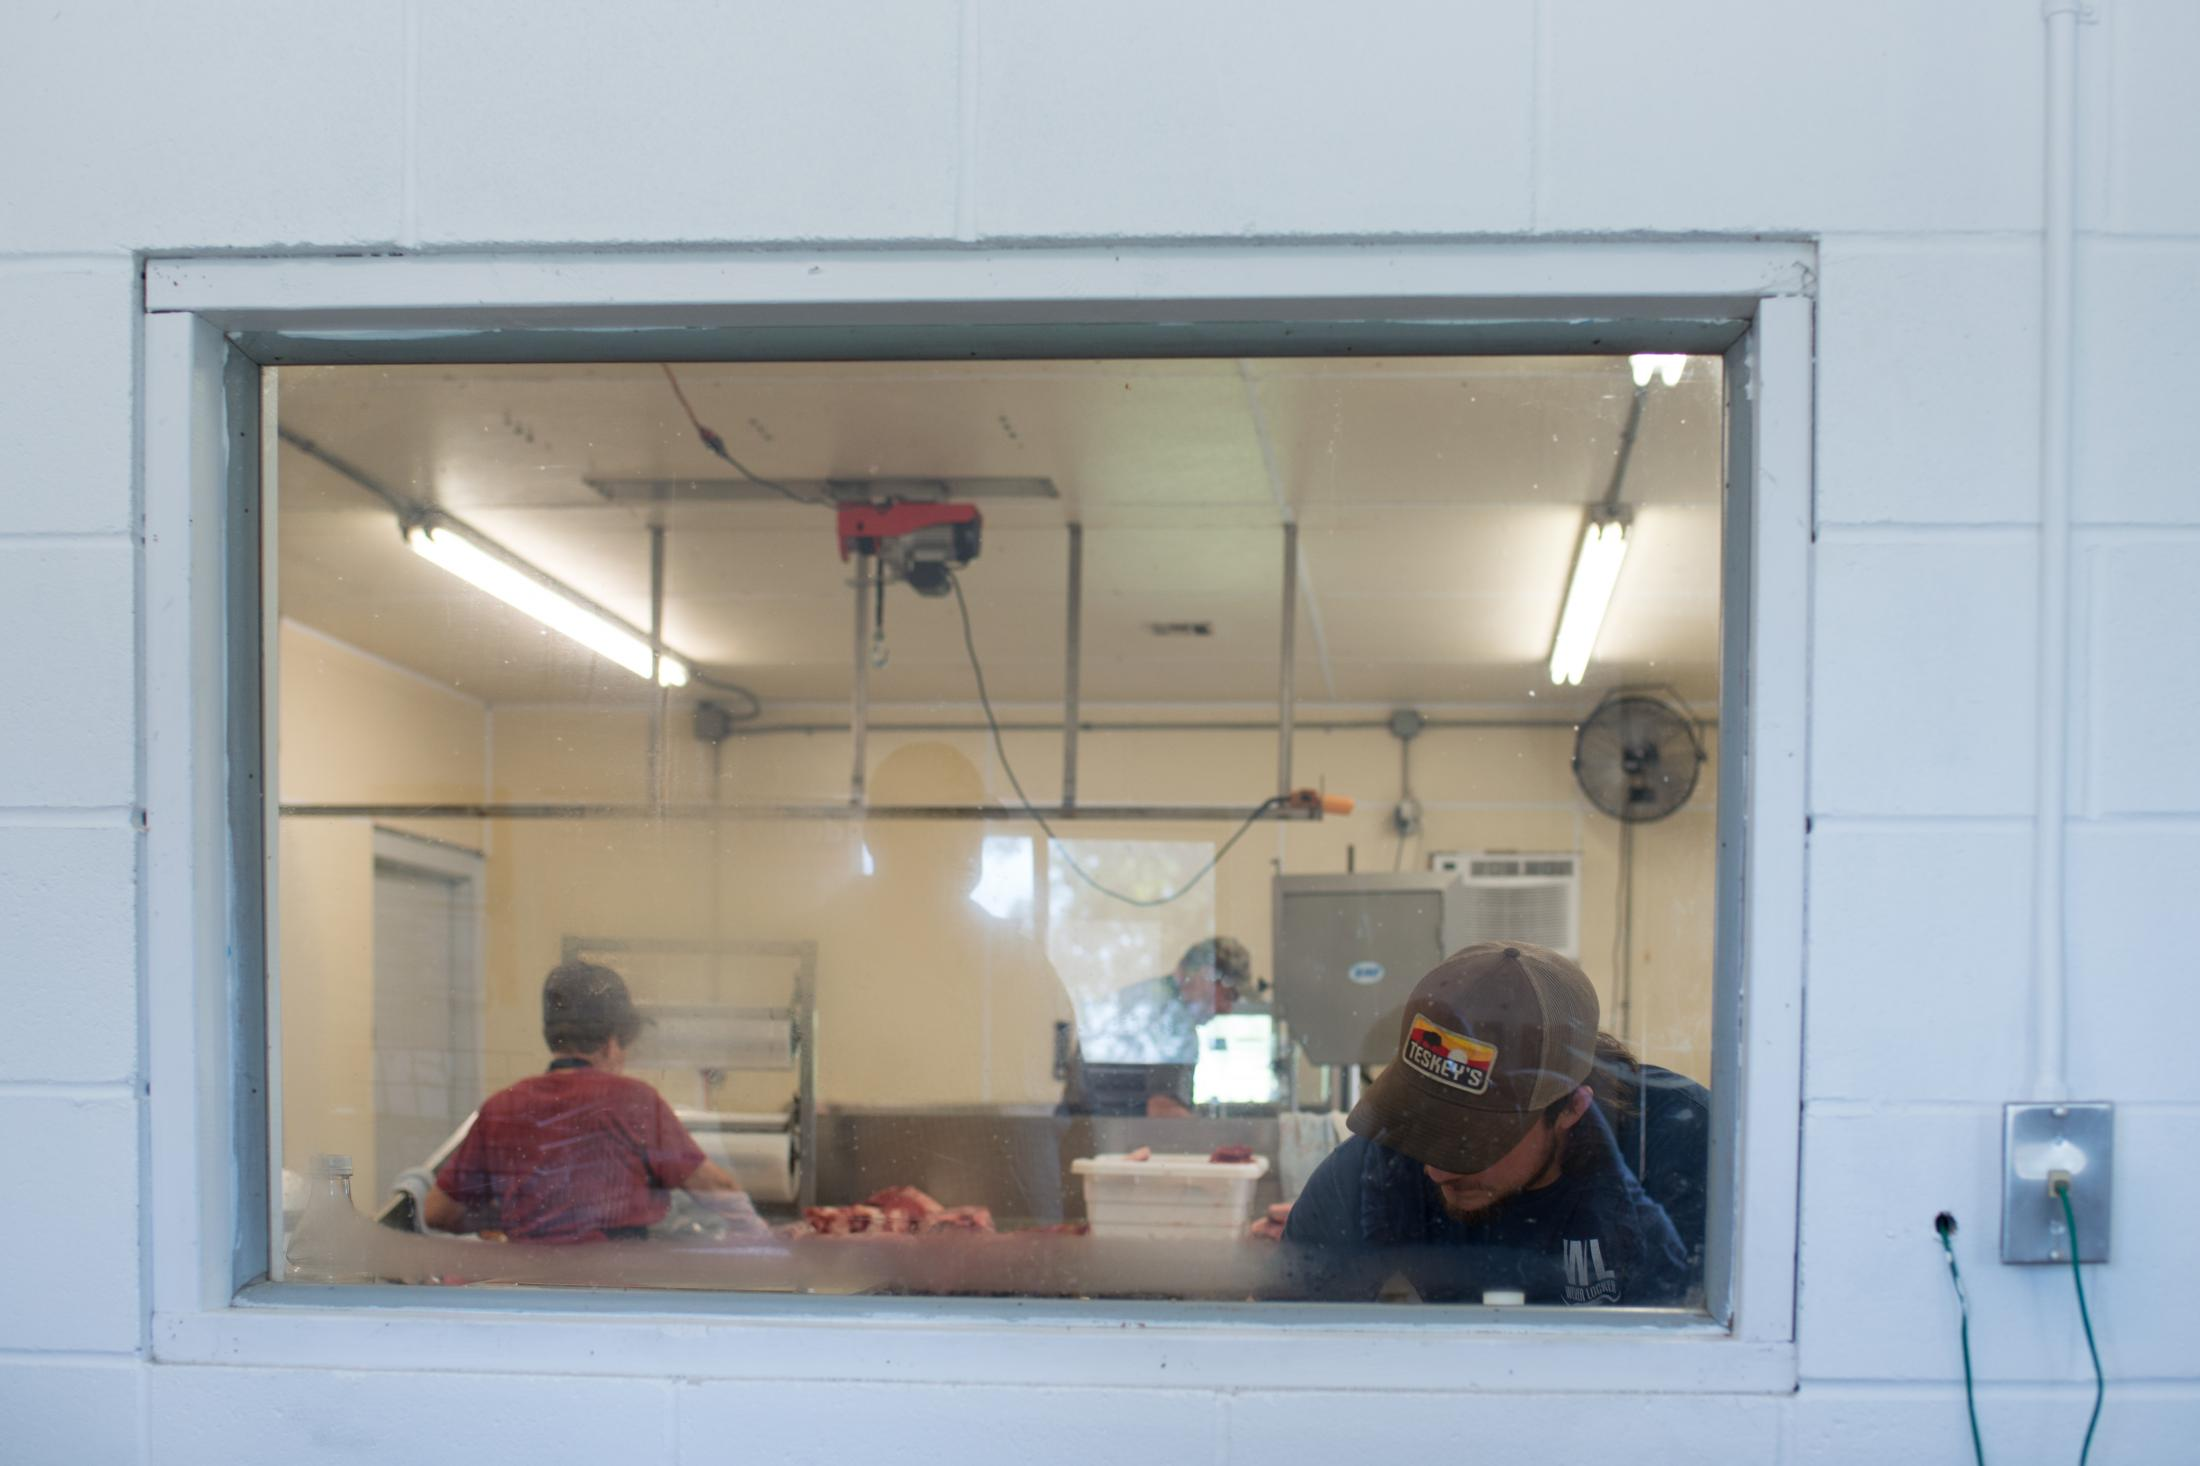 Employees process meat inside a meat processing facility in Wever, Iowa, on Tuesday, Aug. 24, 2021. Last year, almost 5 million hides, or about 15 percent of all available hides, ended up in landfills because Americans still kill plenty of cattle for their meat. But their hides increasingly have nowhere to go.